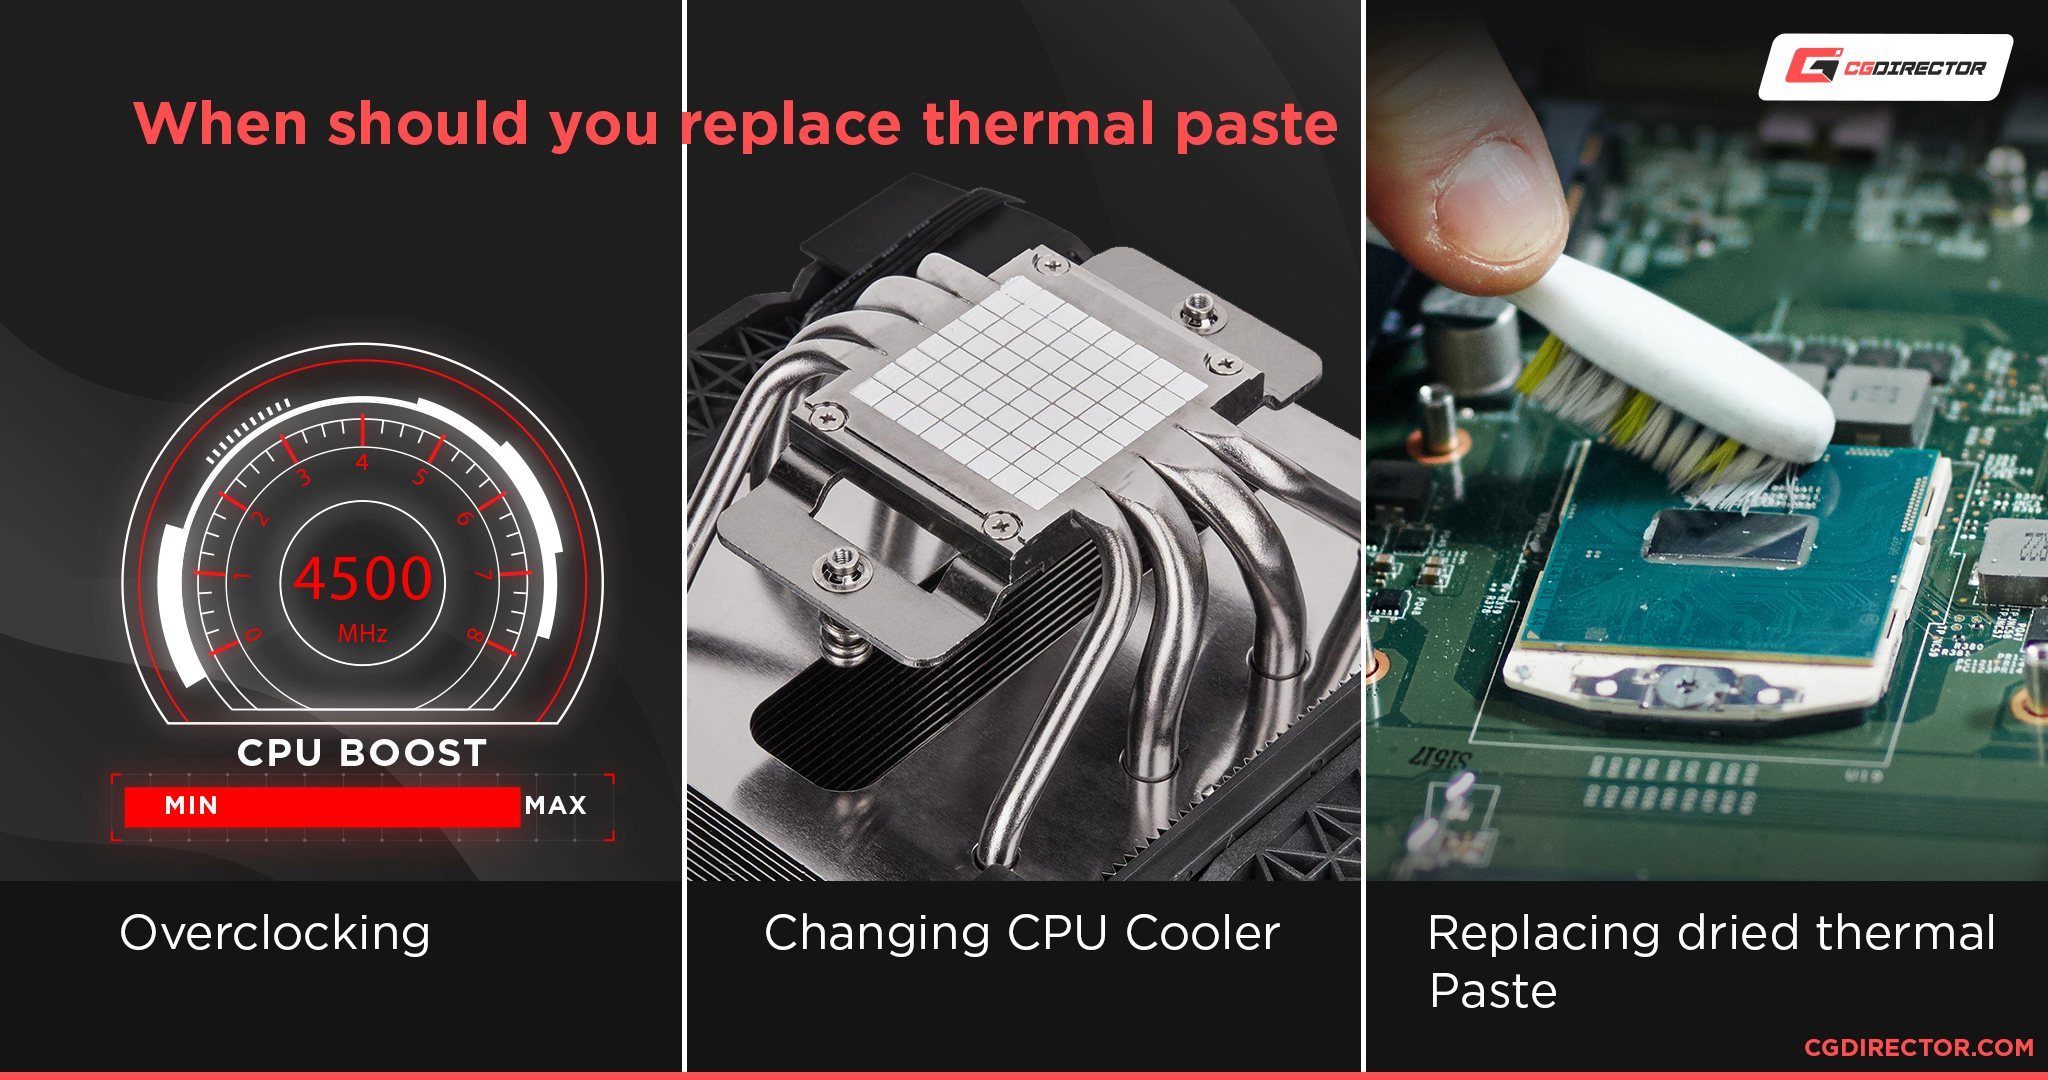 When should you replace thermal paste